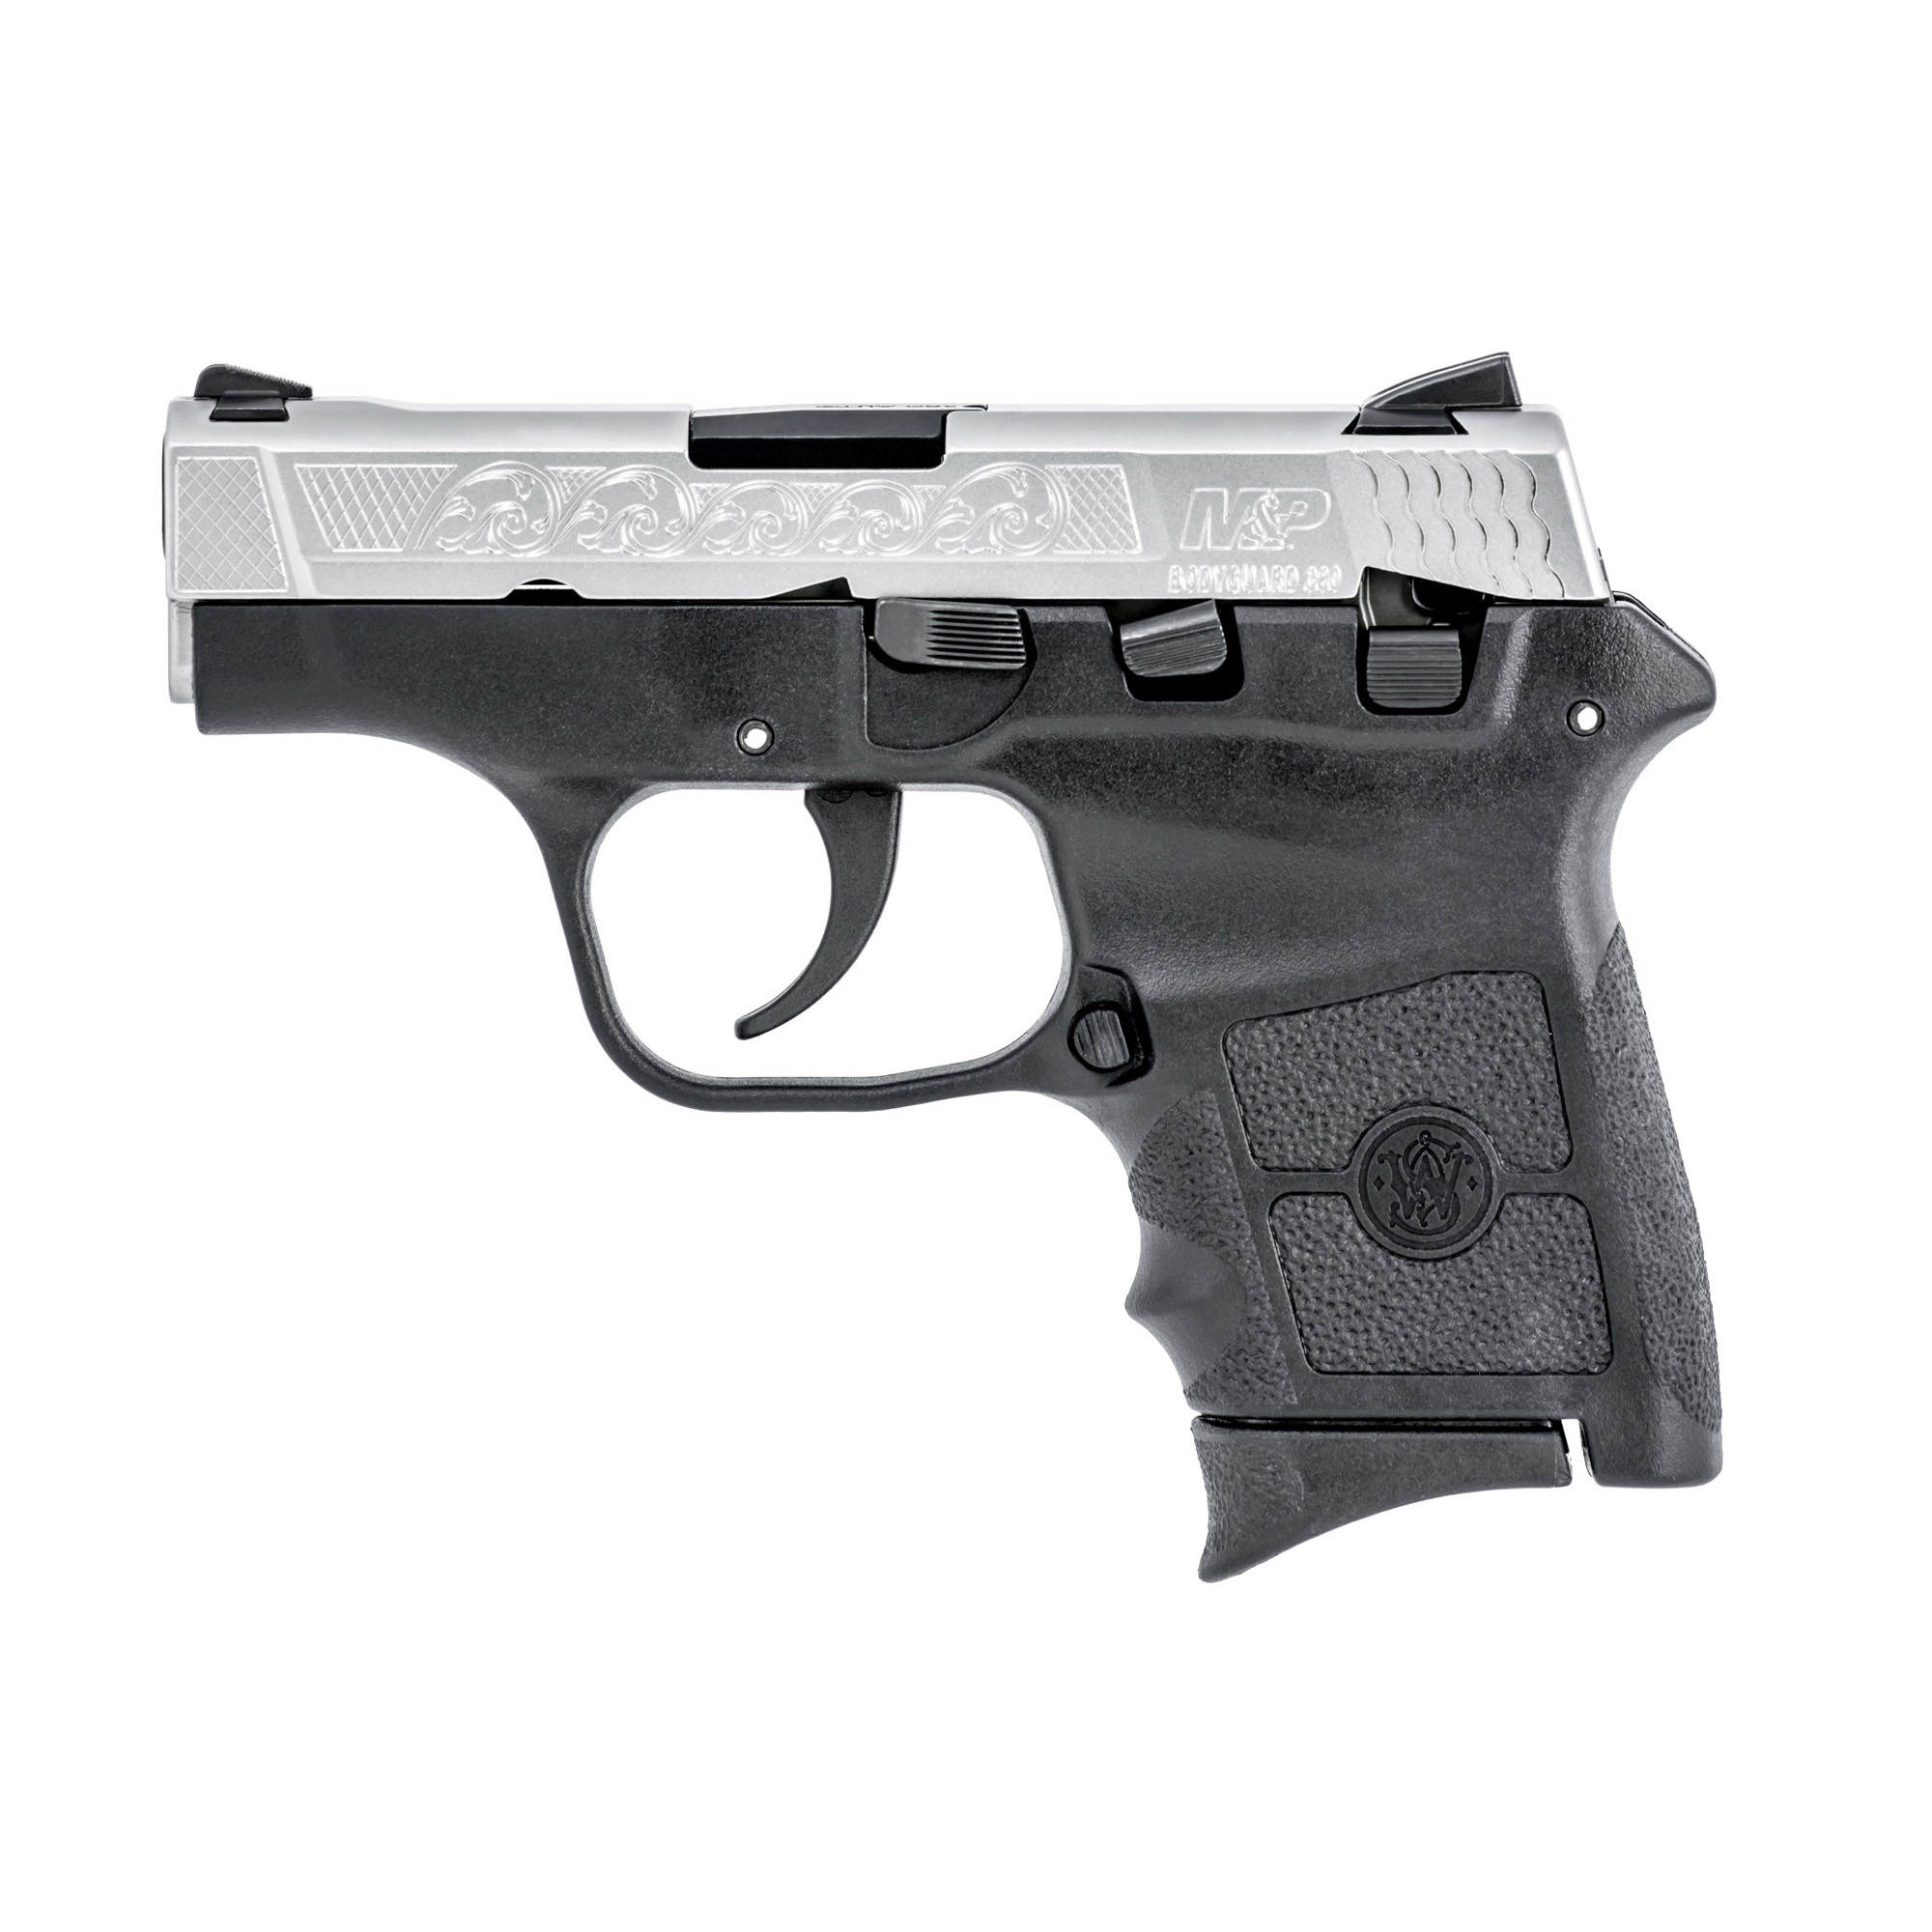 "Compact"" sleek and ergonomic"" the M&P(R) BODYGUARD(R) 380 delivers personal protection in an easy-to-carry"" comfortable platform. Chambered for .380 ACP"" the lightweight pistol features a high-strength polymer frame with a black"" matte-coated stainless-steel slide and barrel. The new M&P BODYGUARD 380 retains original design features including a 2 3/4-inch barrel"" which contributes to an overall length of 5 1/4 inches and an unloaded weight of only 12.3 ounces making it perfectly suited for concealed carry. This package includes 2 magazines"" one with a finger groove for added stability"" and one with a flat butt plate for maximum concealability."